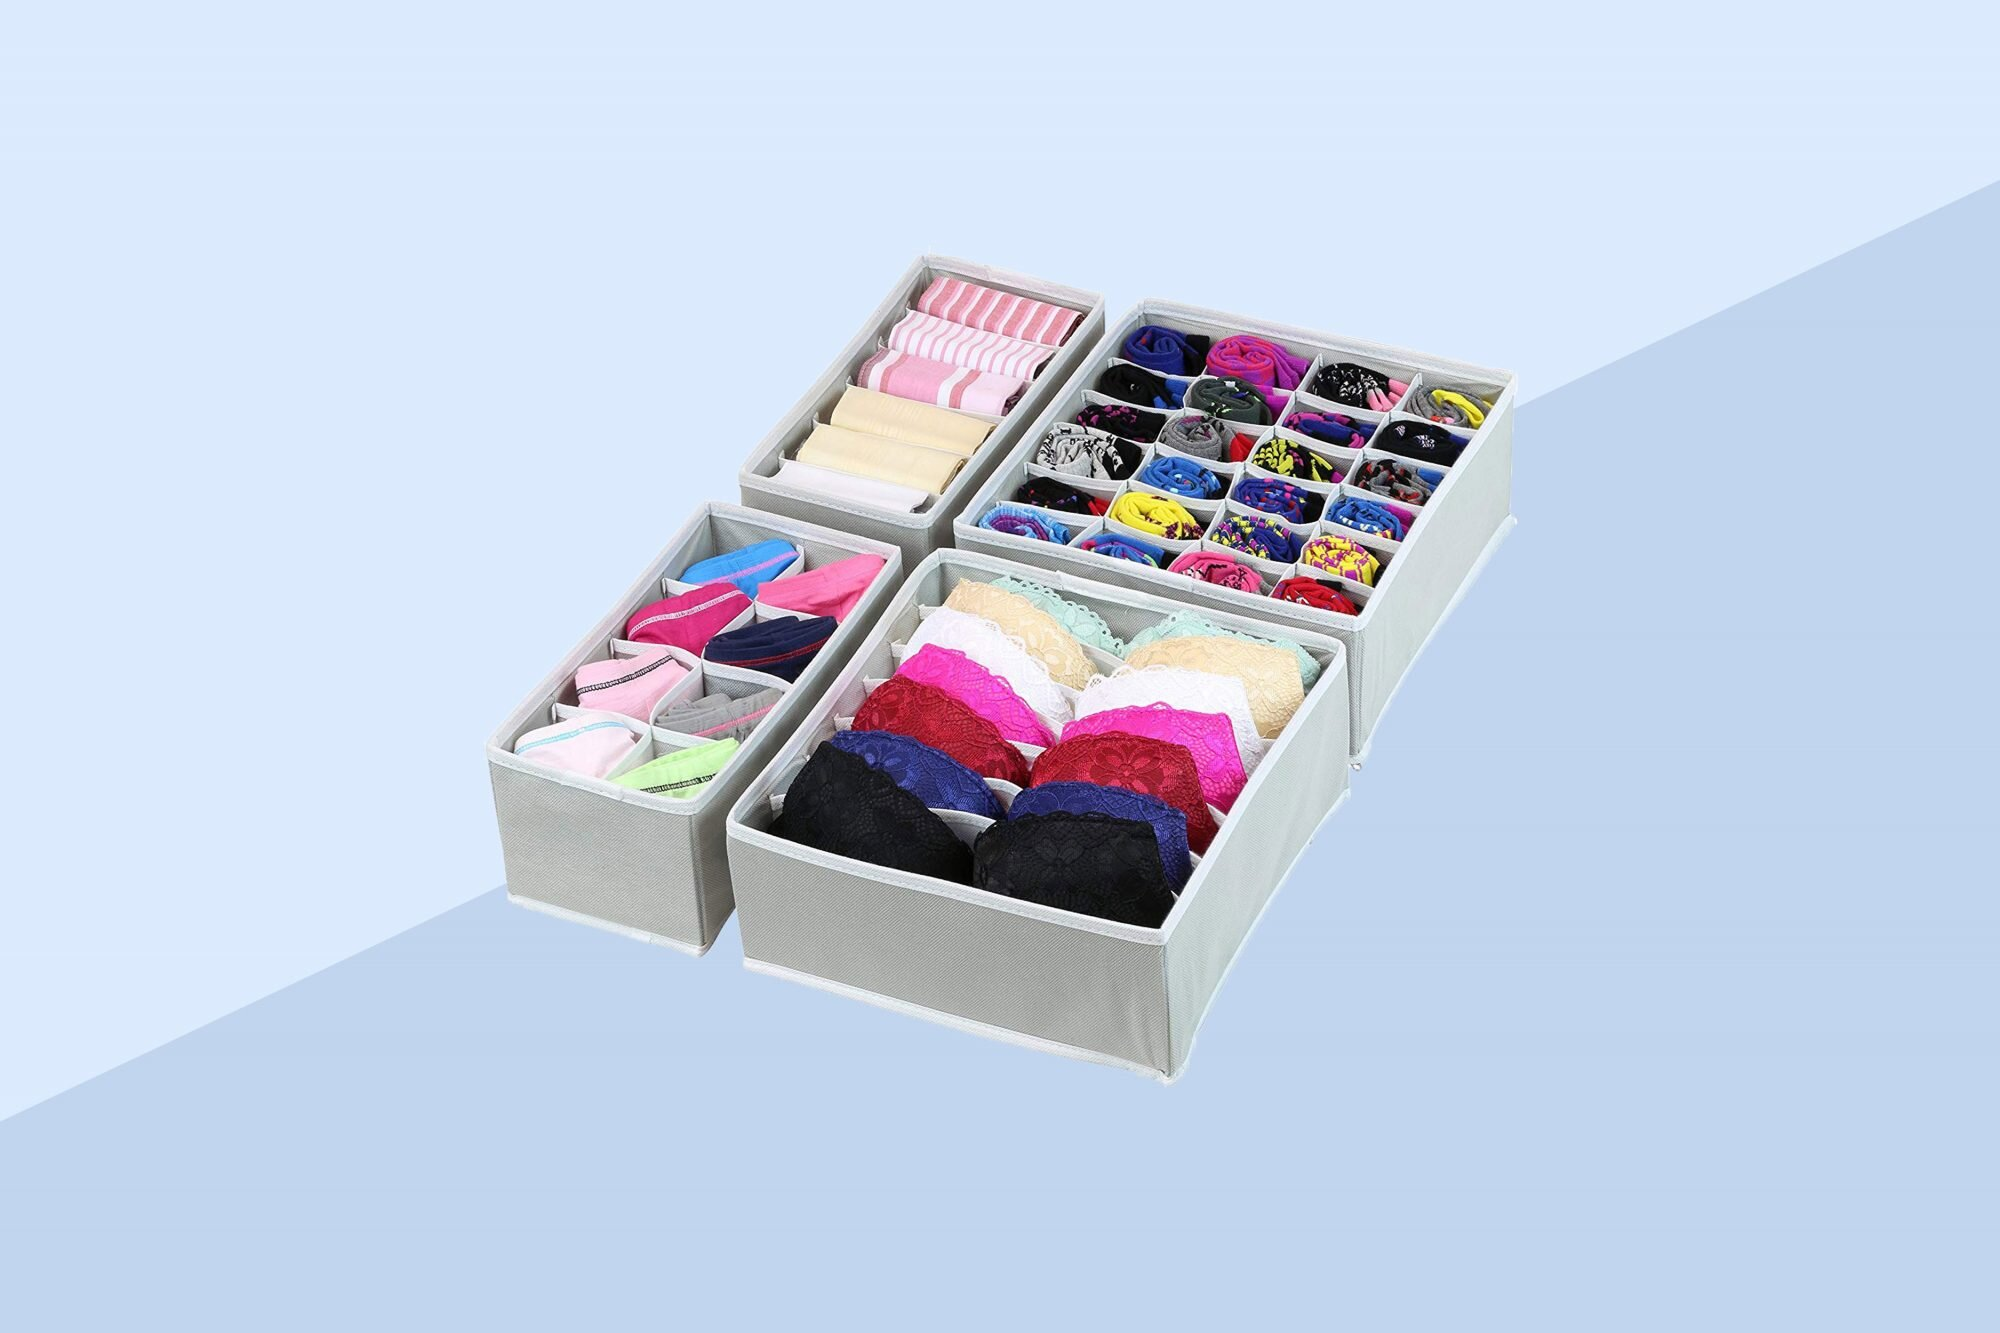 245e32f7d8aec 25 of the Most Life-Changing Organization Products on Amazon